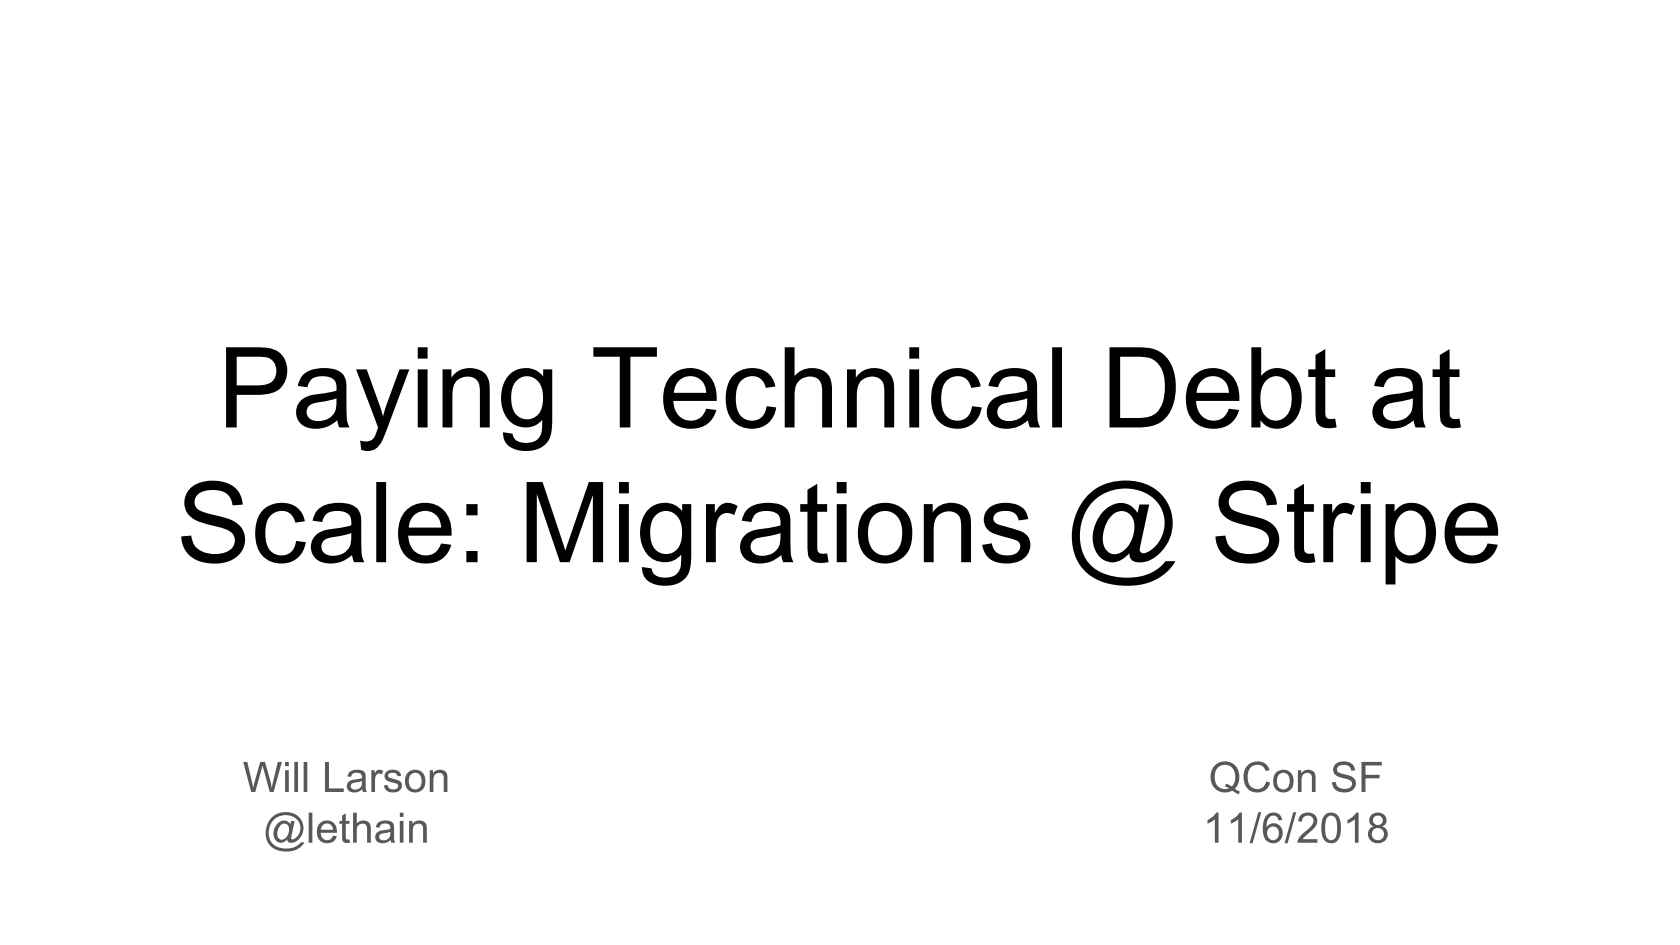 Paying Technical Debt at Scale - Migrations @Stripe